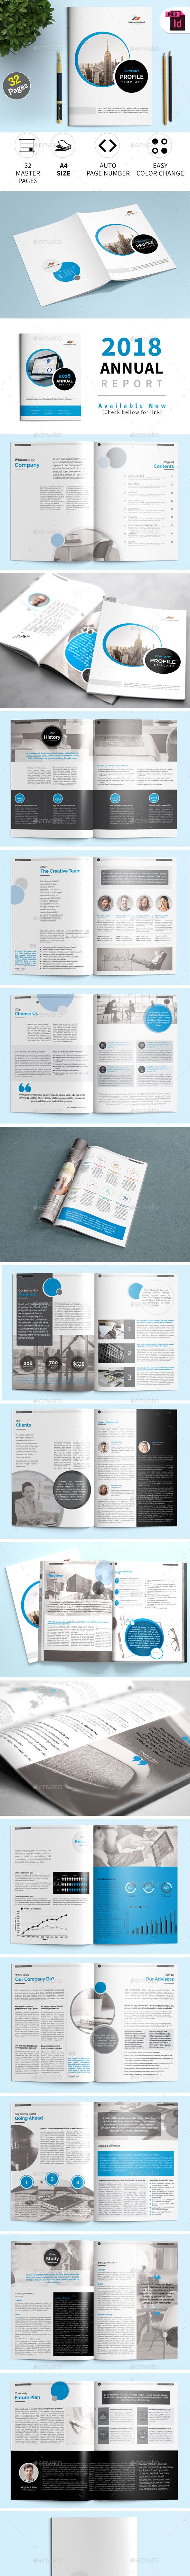 Company Profile Indesign Template By Nzaman Graphicriver